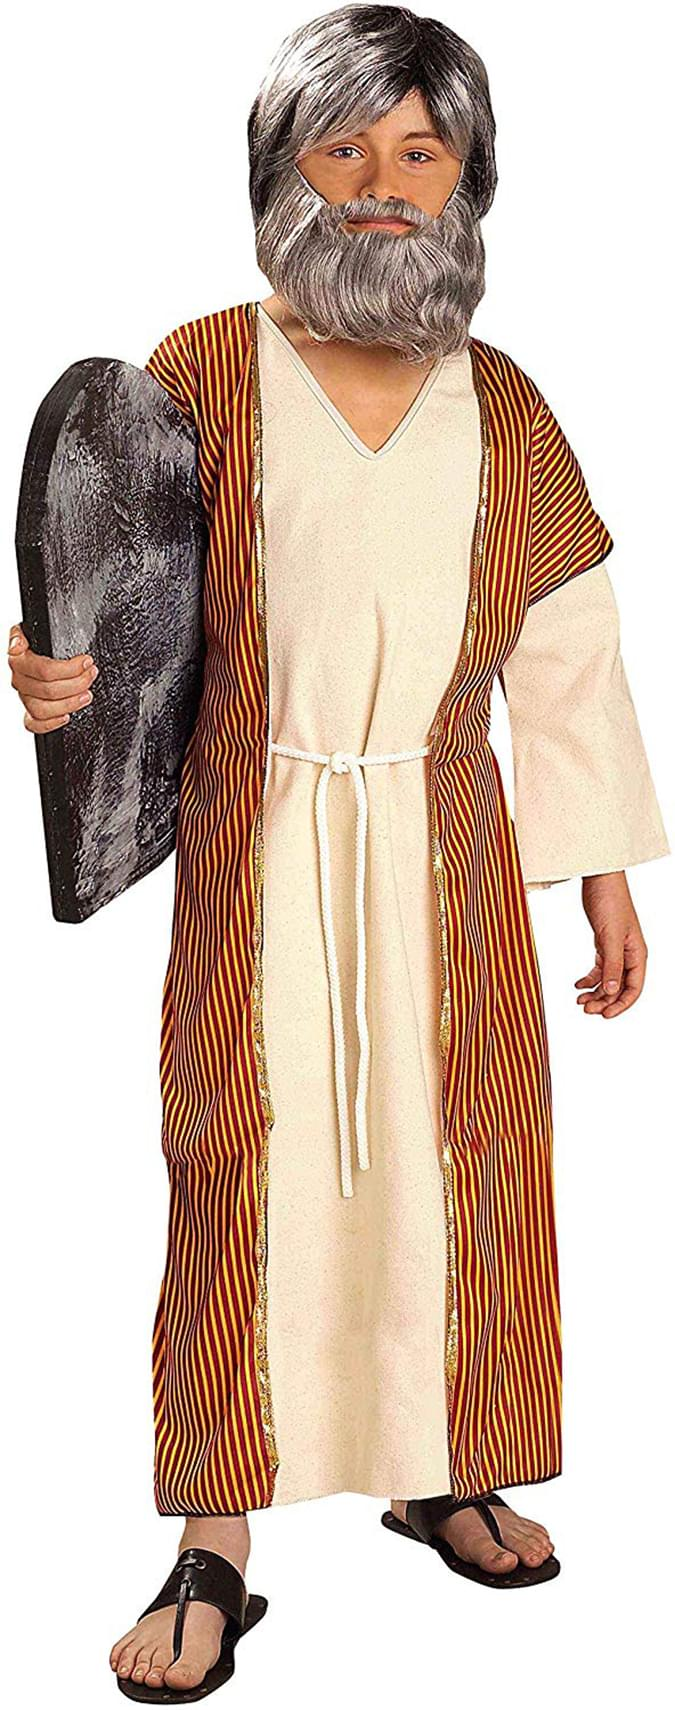 Biblical Times Moses Costume Child Large